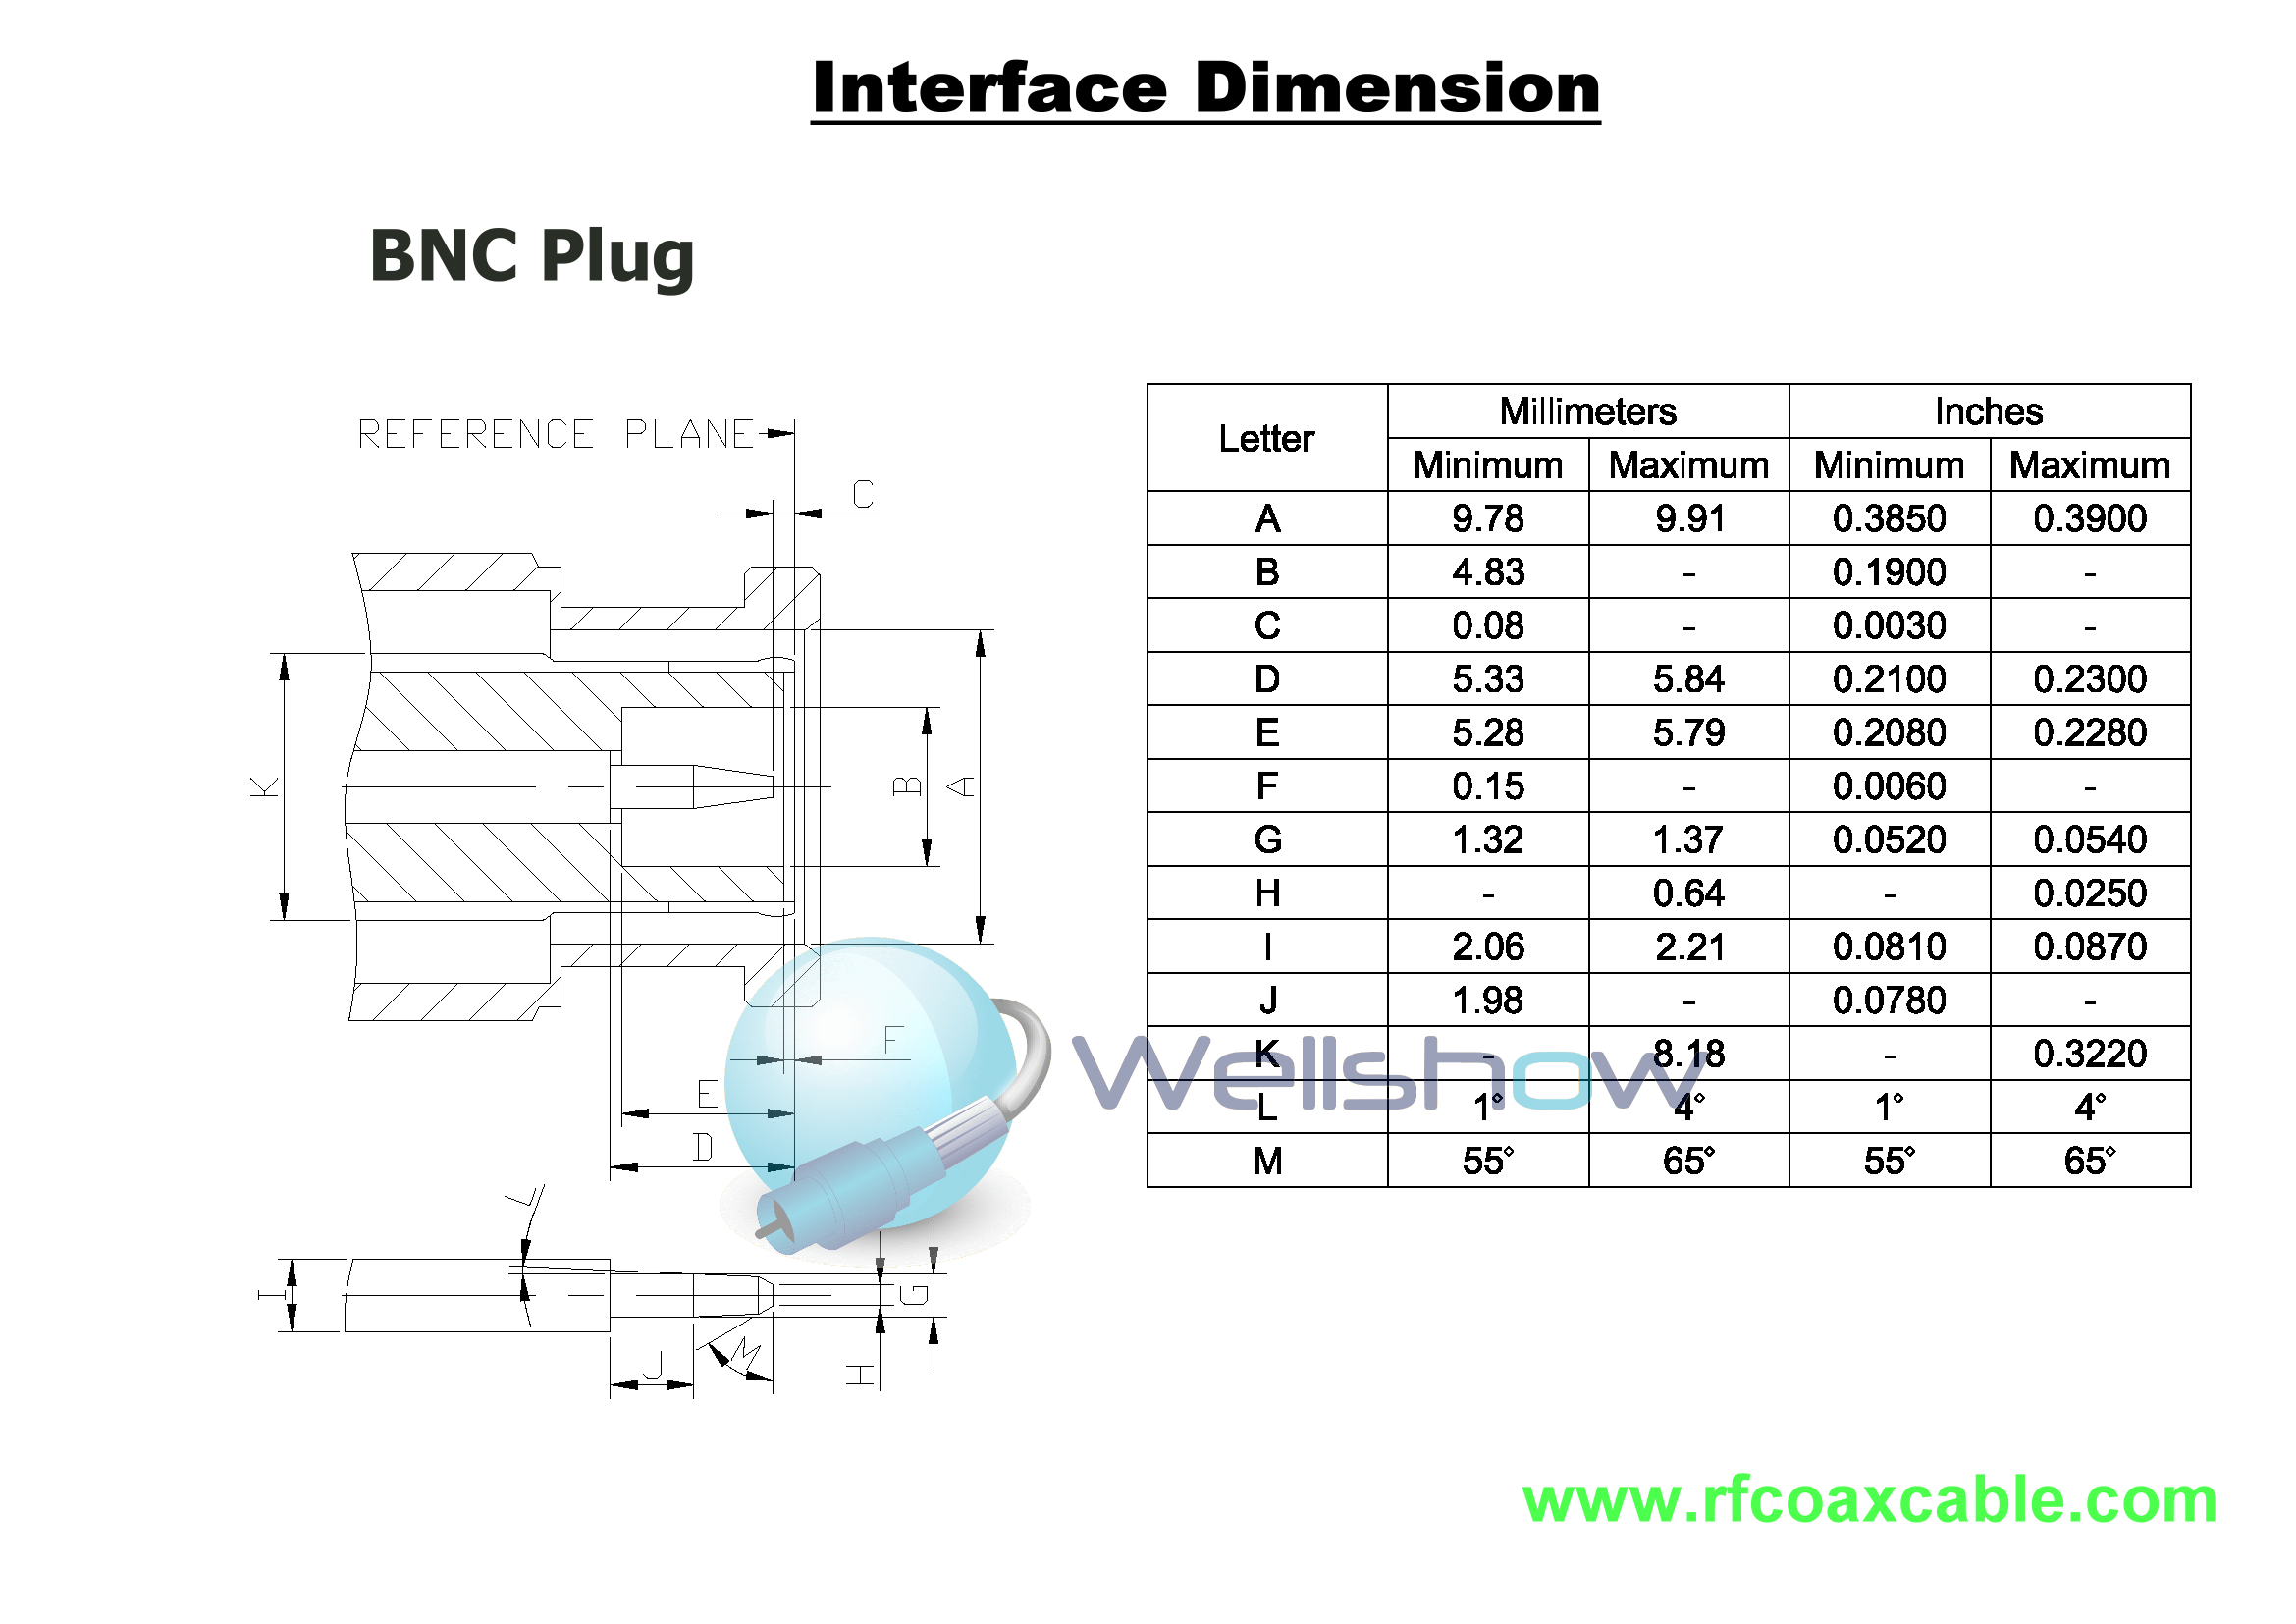 bnc rf connectors  coaxial connectors  rf cable connectors  coaxial cable connectors  50 ohm